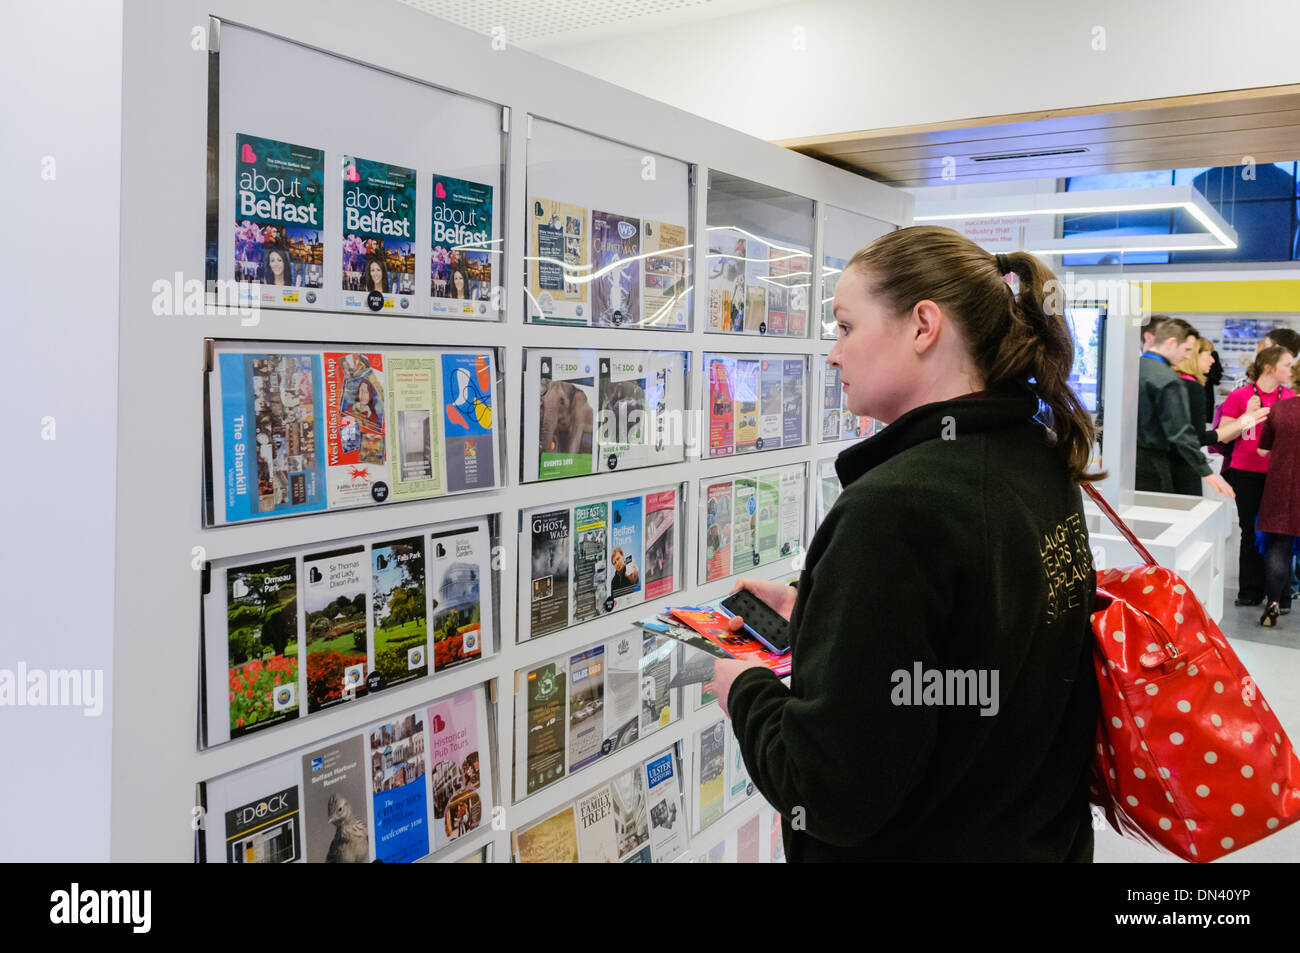 A woman browses the tourist information leaflets in Visit Belfast tourist information centre - Stock Image